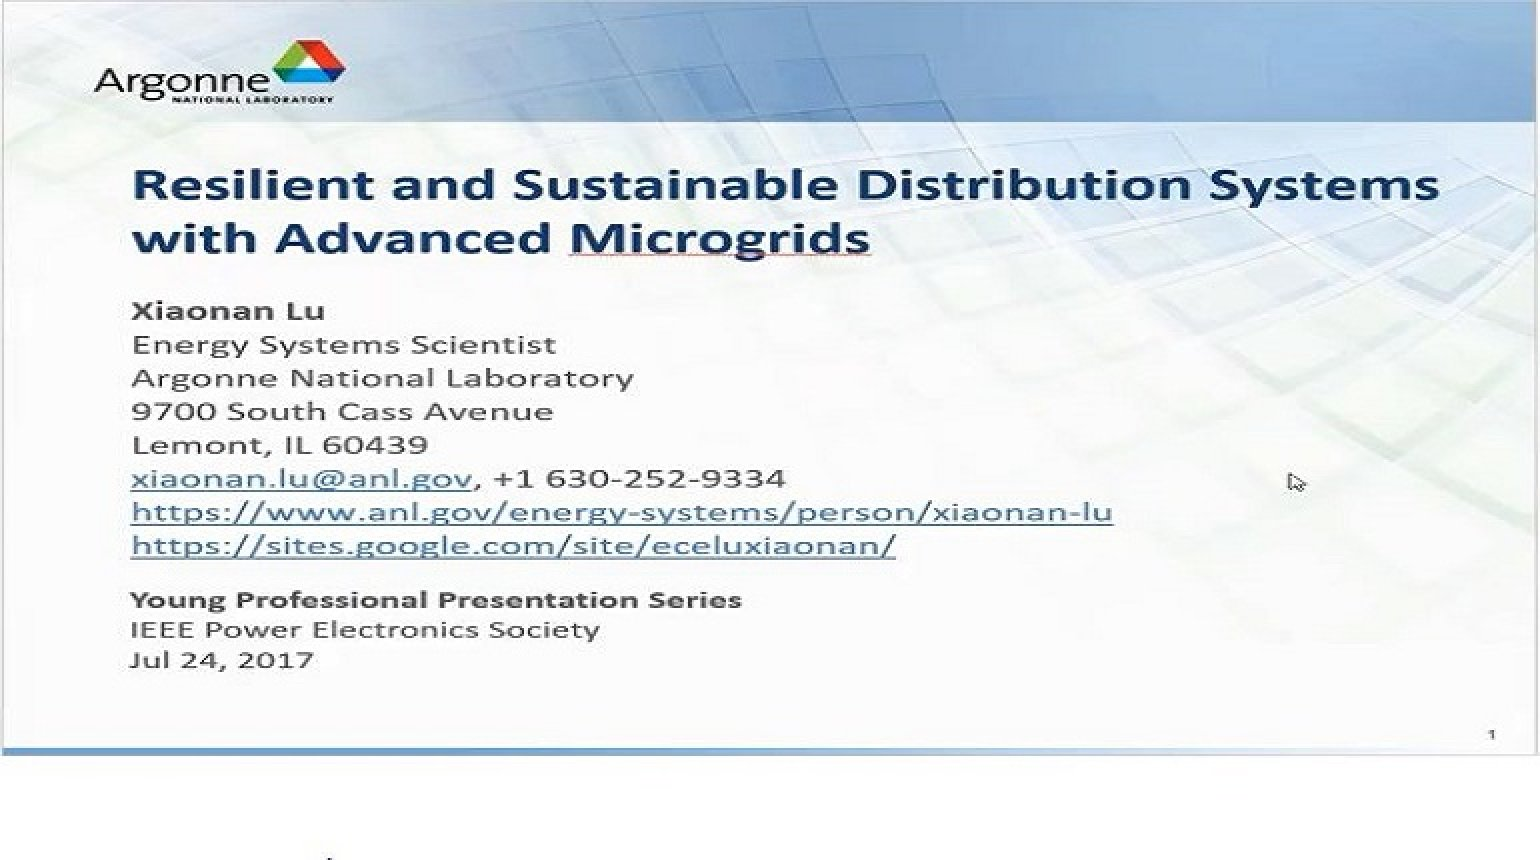 YP Webinar: Resilient and Sustainable Distribution Systems with Advanced Microgrids Video